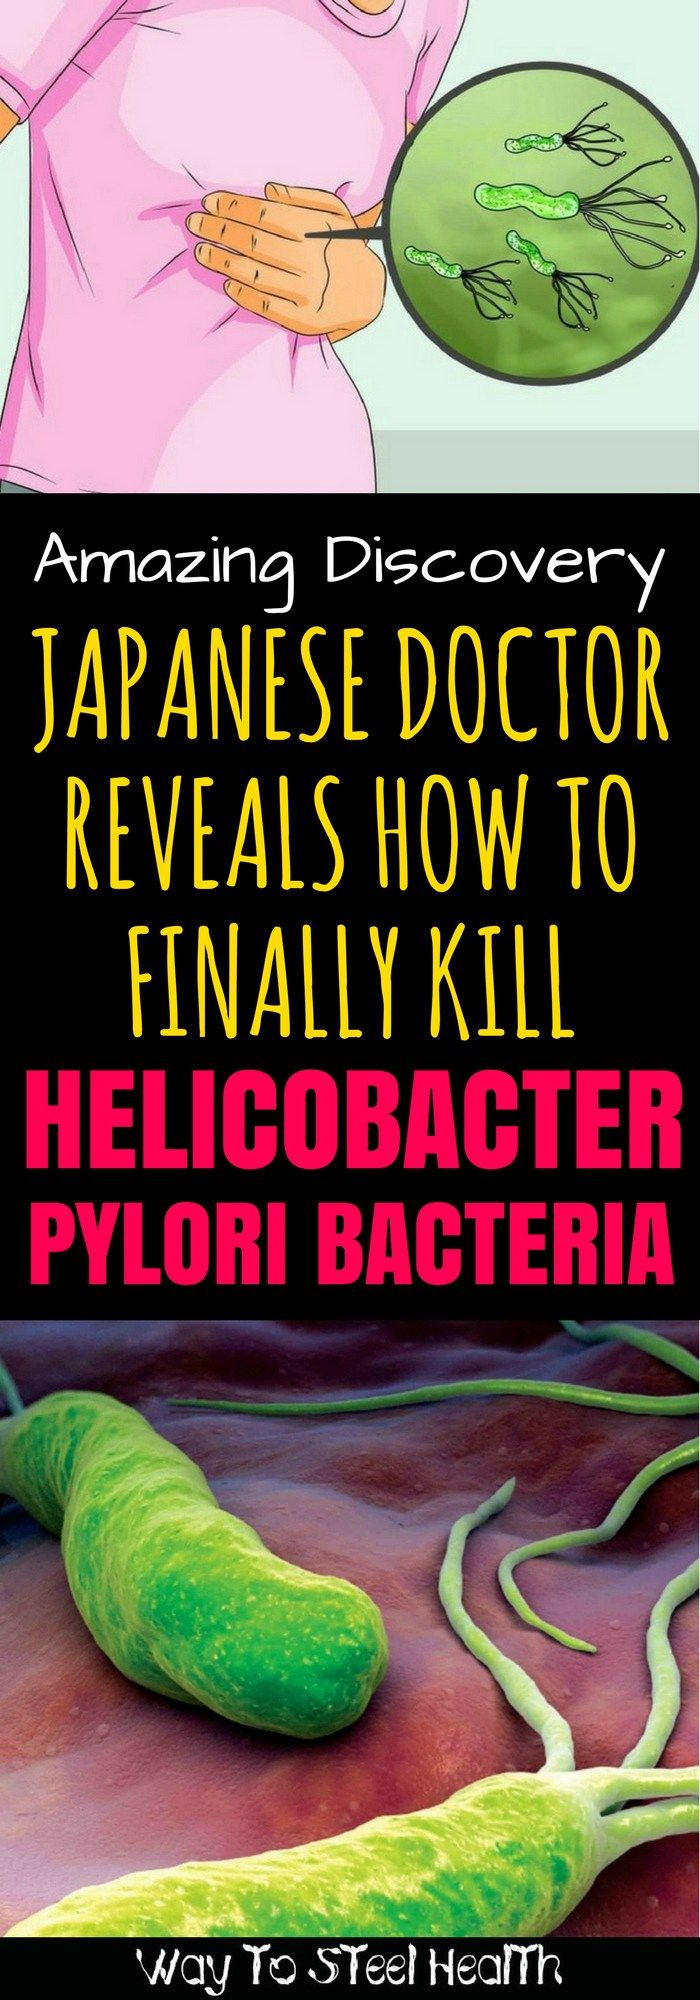 Amazing Discovery: Japanese Doctor Reveals How To Finally ...